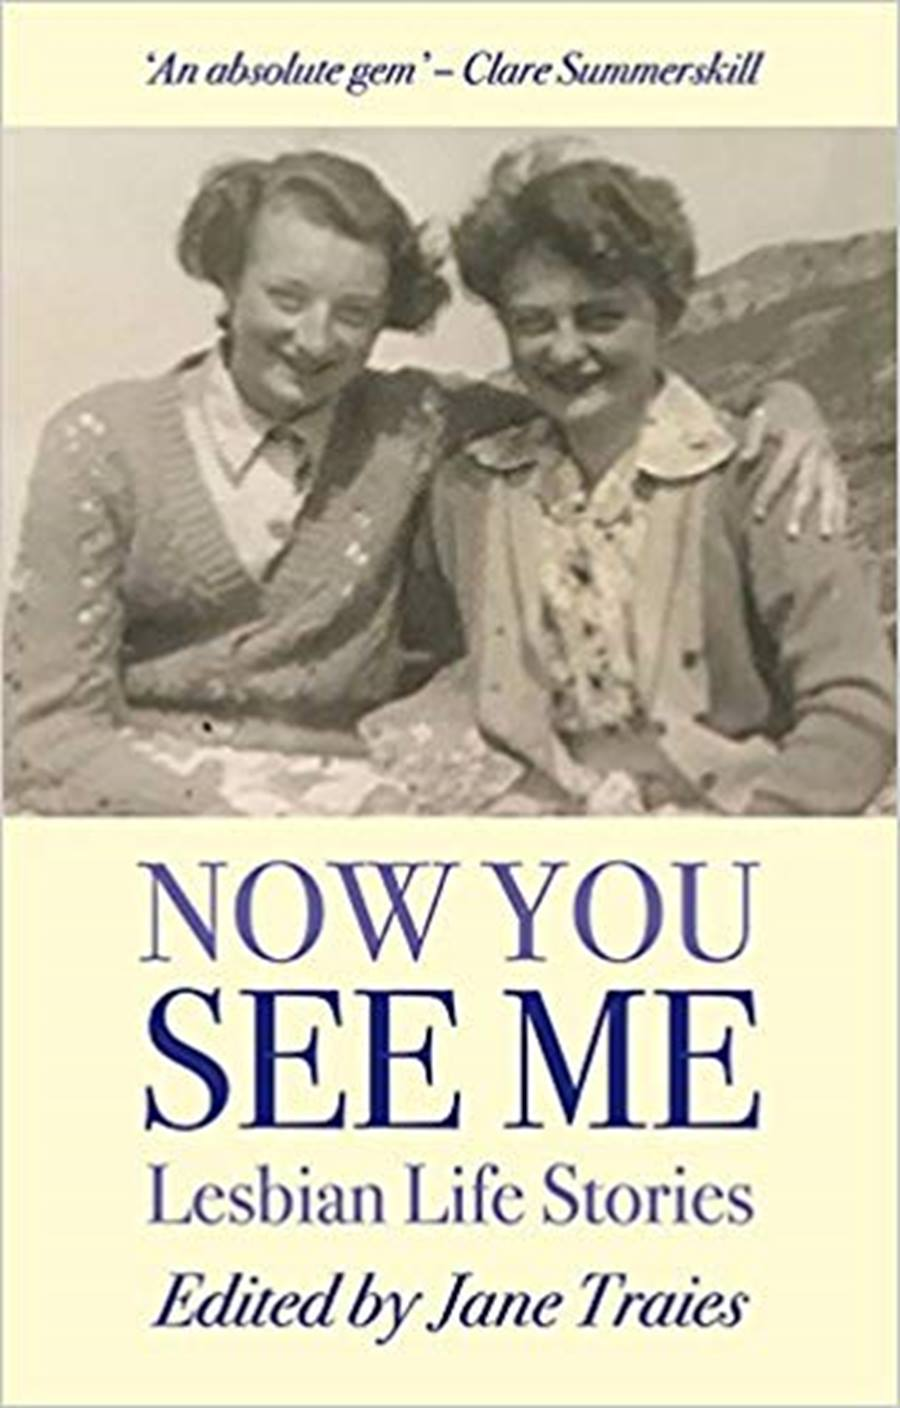 Dr Jane Traies: 'Now You See Me'